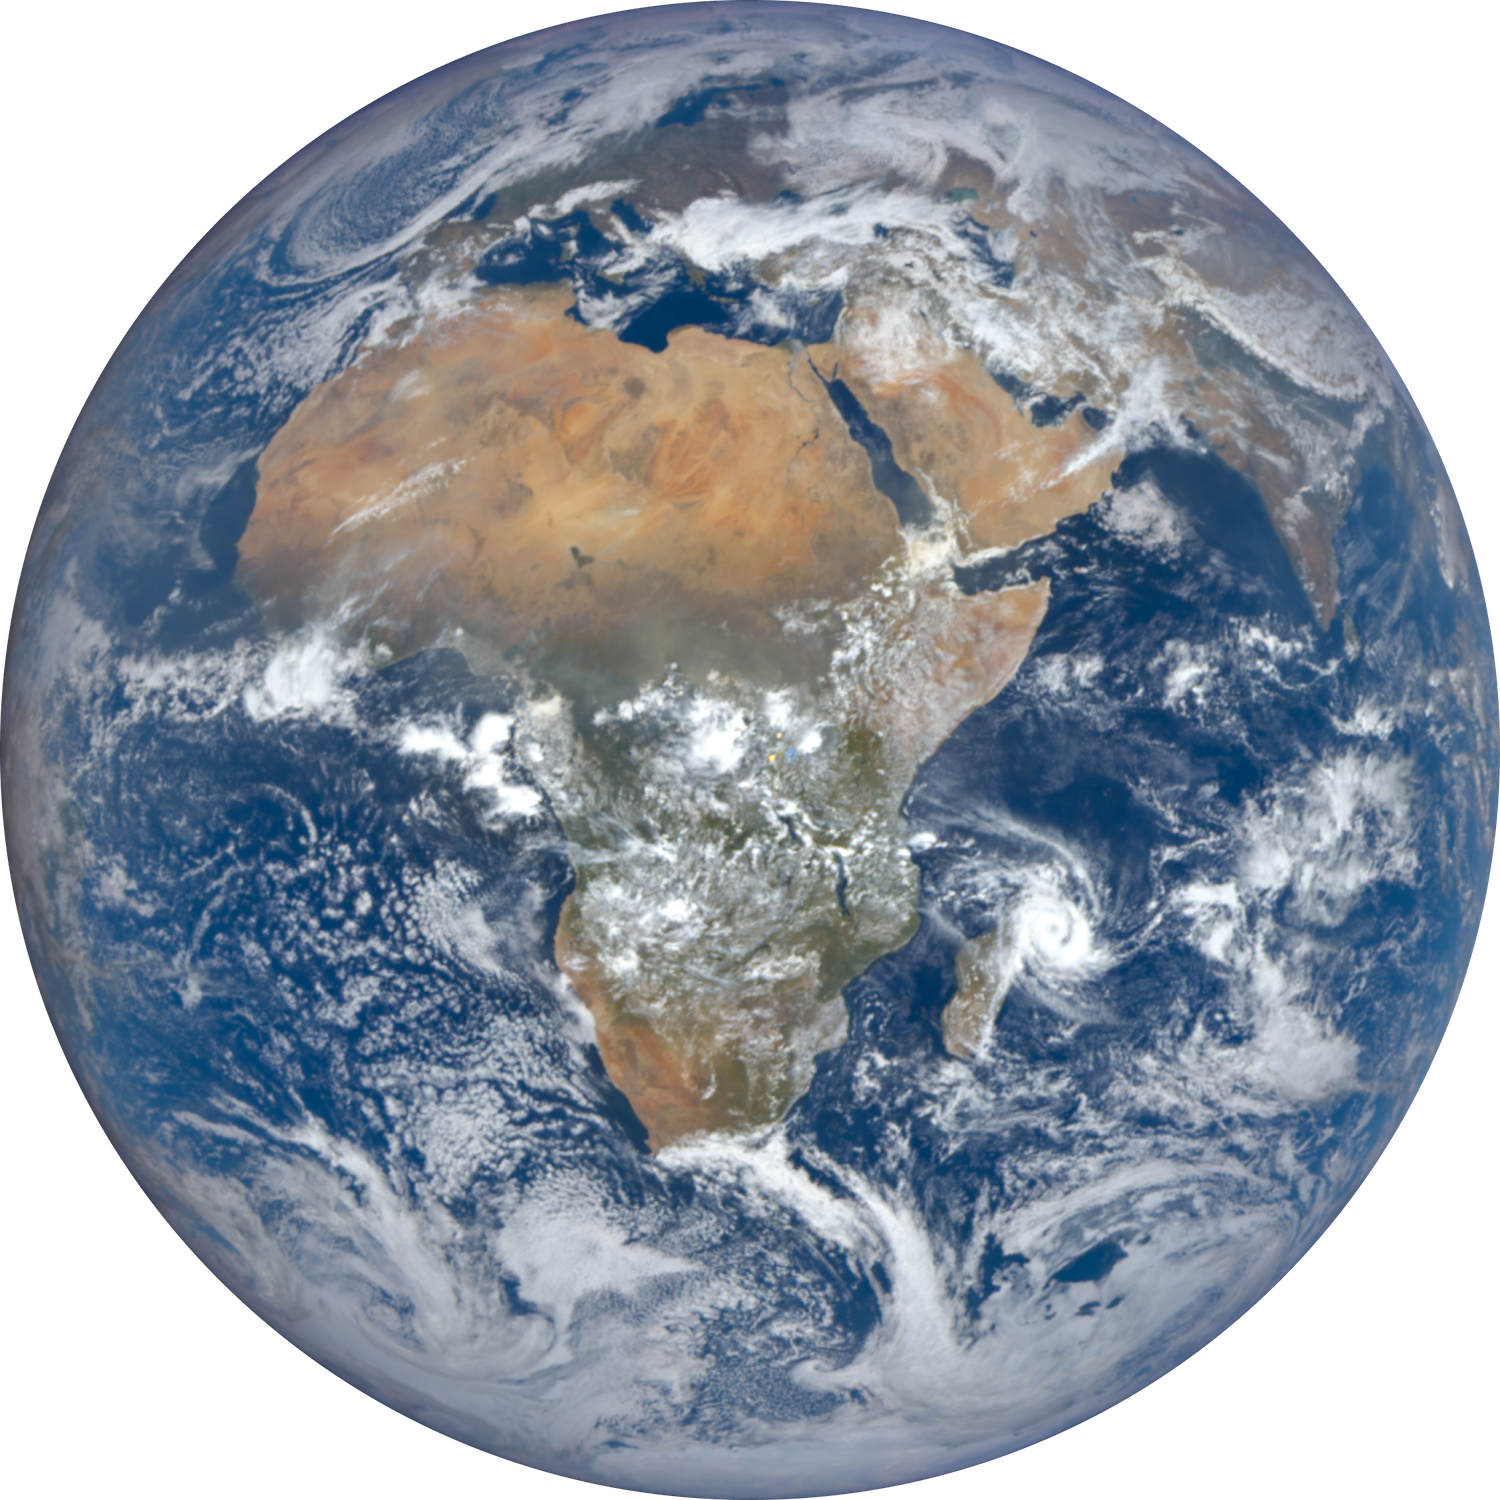 Earth viewed by DSCVR - NASA - OneHome